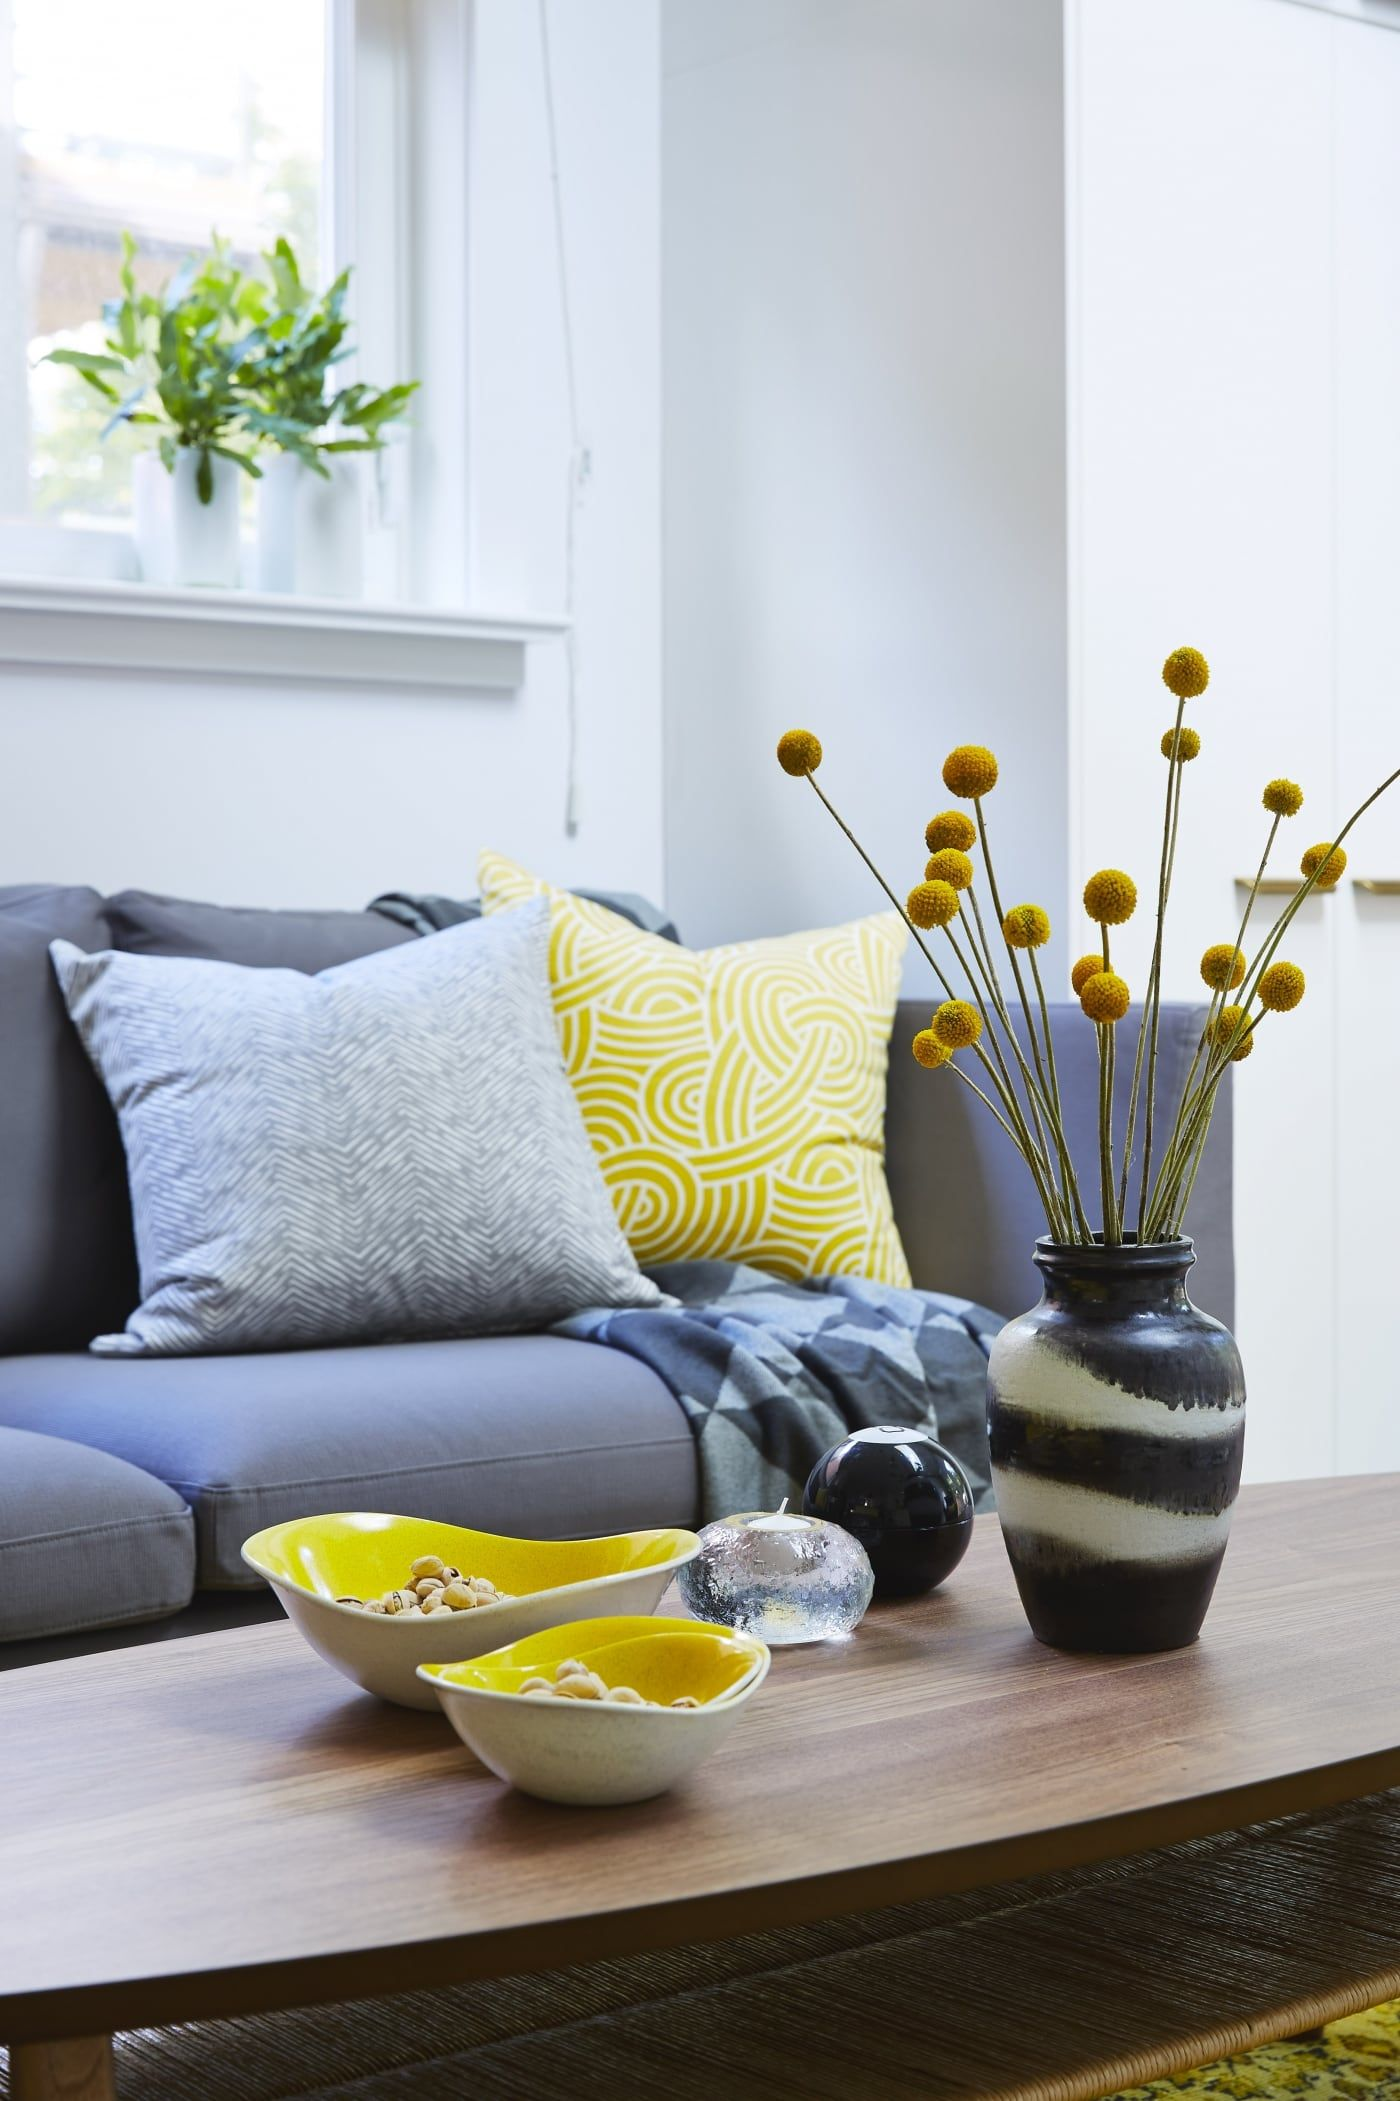 Sunny Side Up Living Room Detail Grey Sofa With Lighter Grey Pillows And Floral Arrangement Living Room Decor Room Decor Grey Pillows